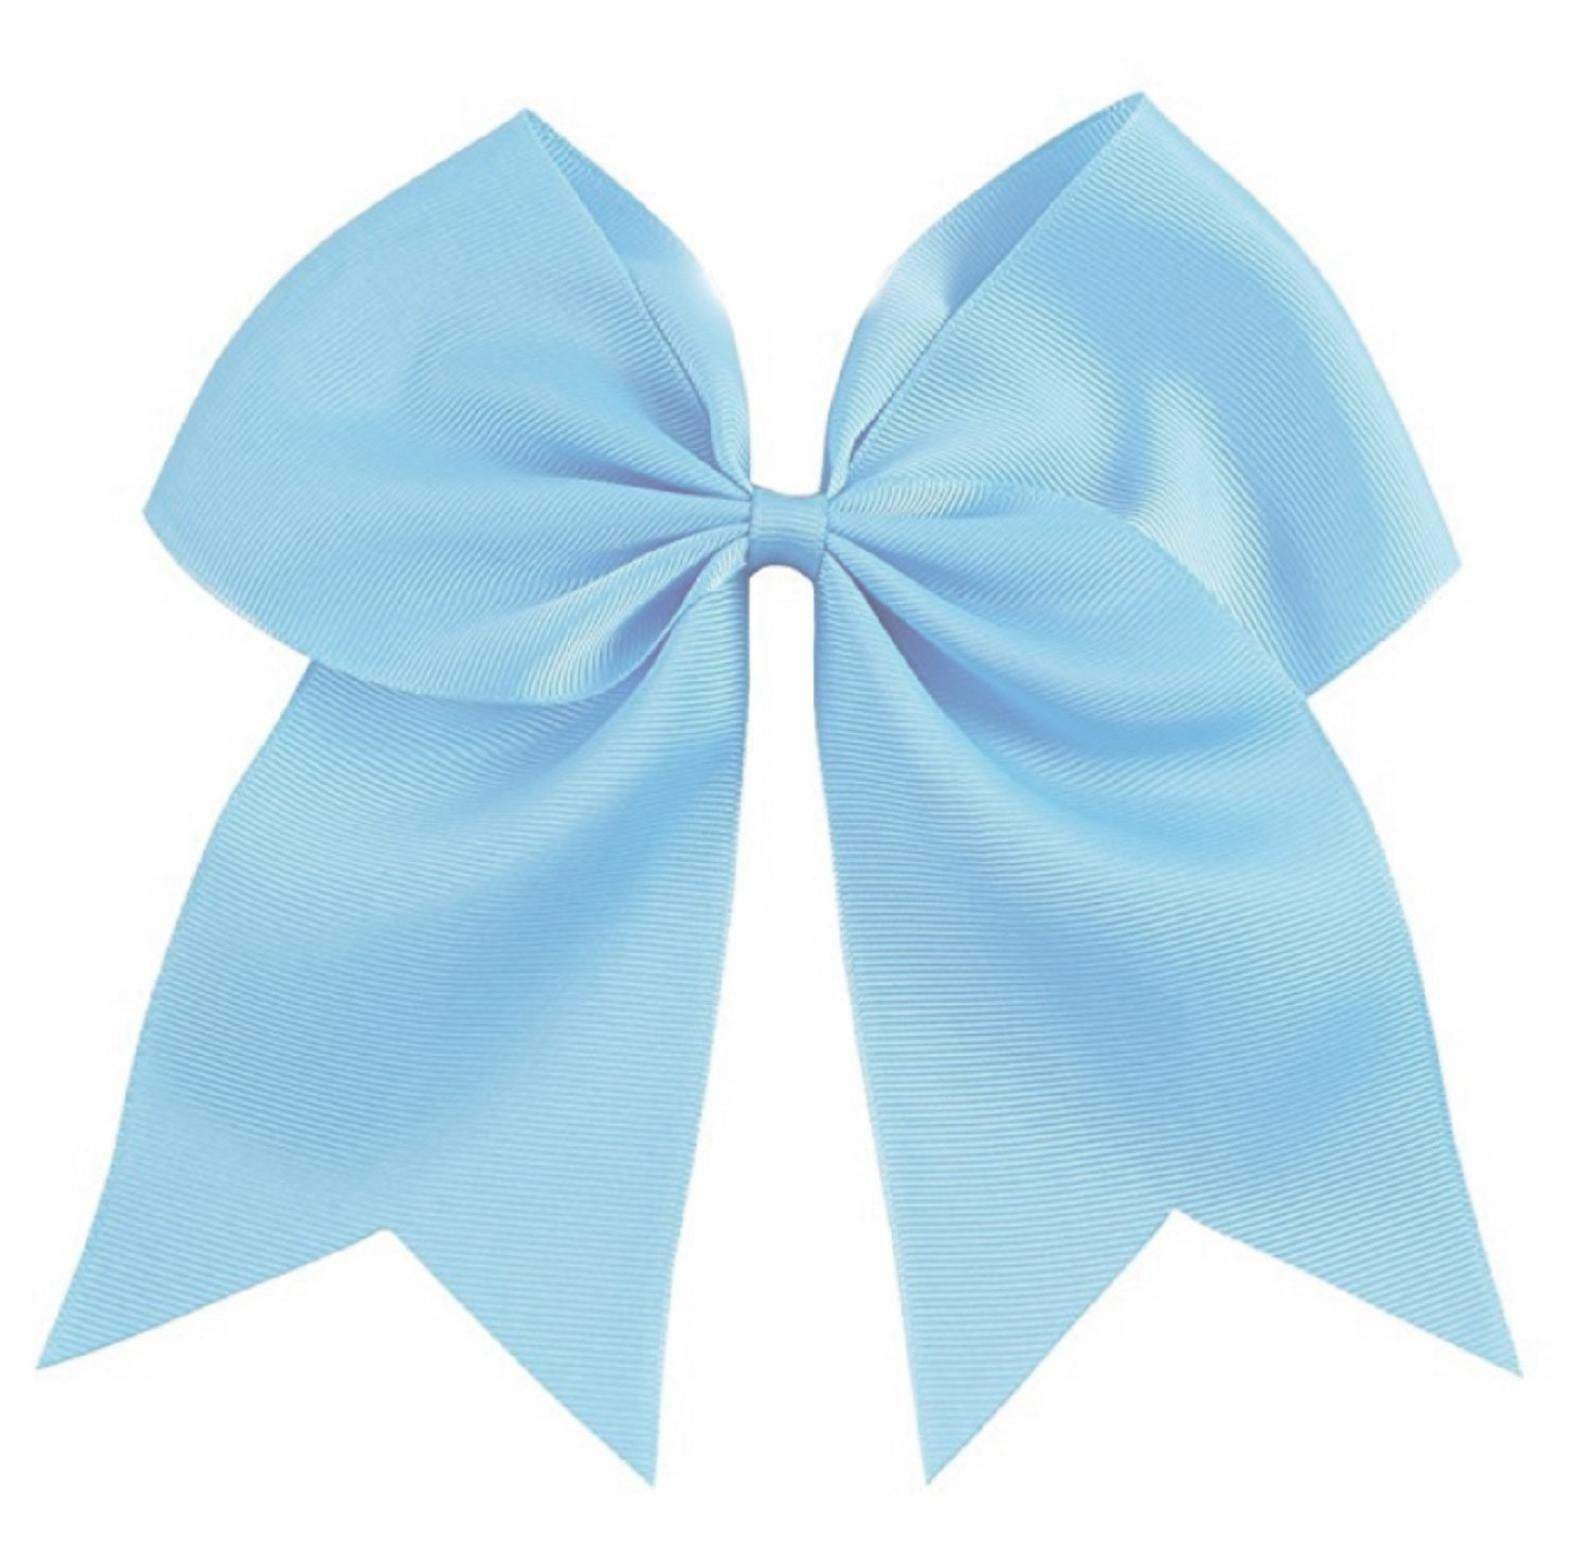 Big Light Blue Hair Bow It S A Christmas Miracle These Cheap Stocking Stuffers Are All 1 Or Less Popsugar Smart Living Photo 33